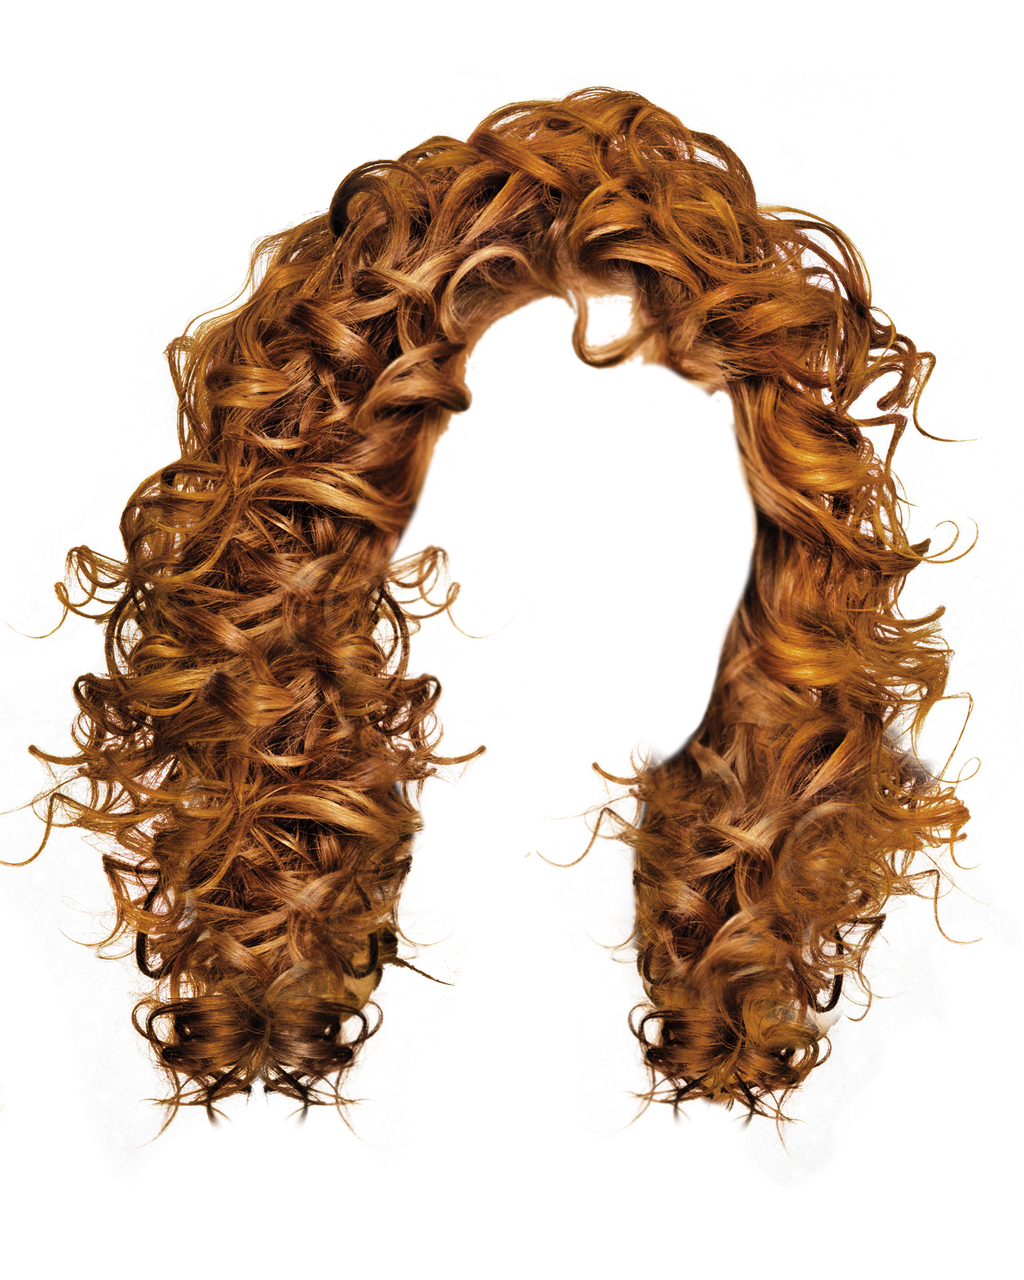 Hairstyle Png : hair_png_6_by_paradise234-d5m0xdj.png